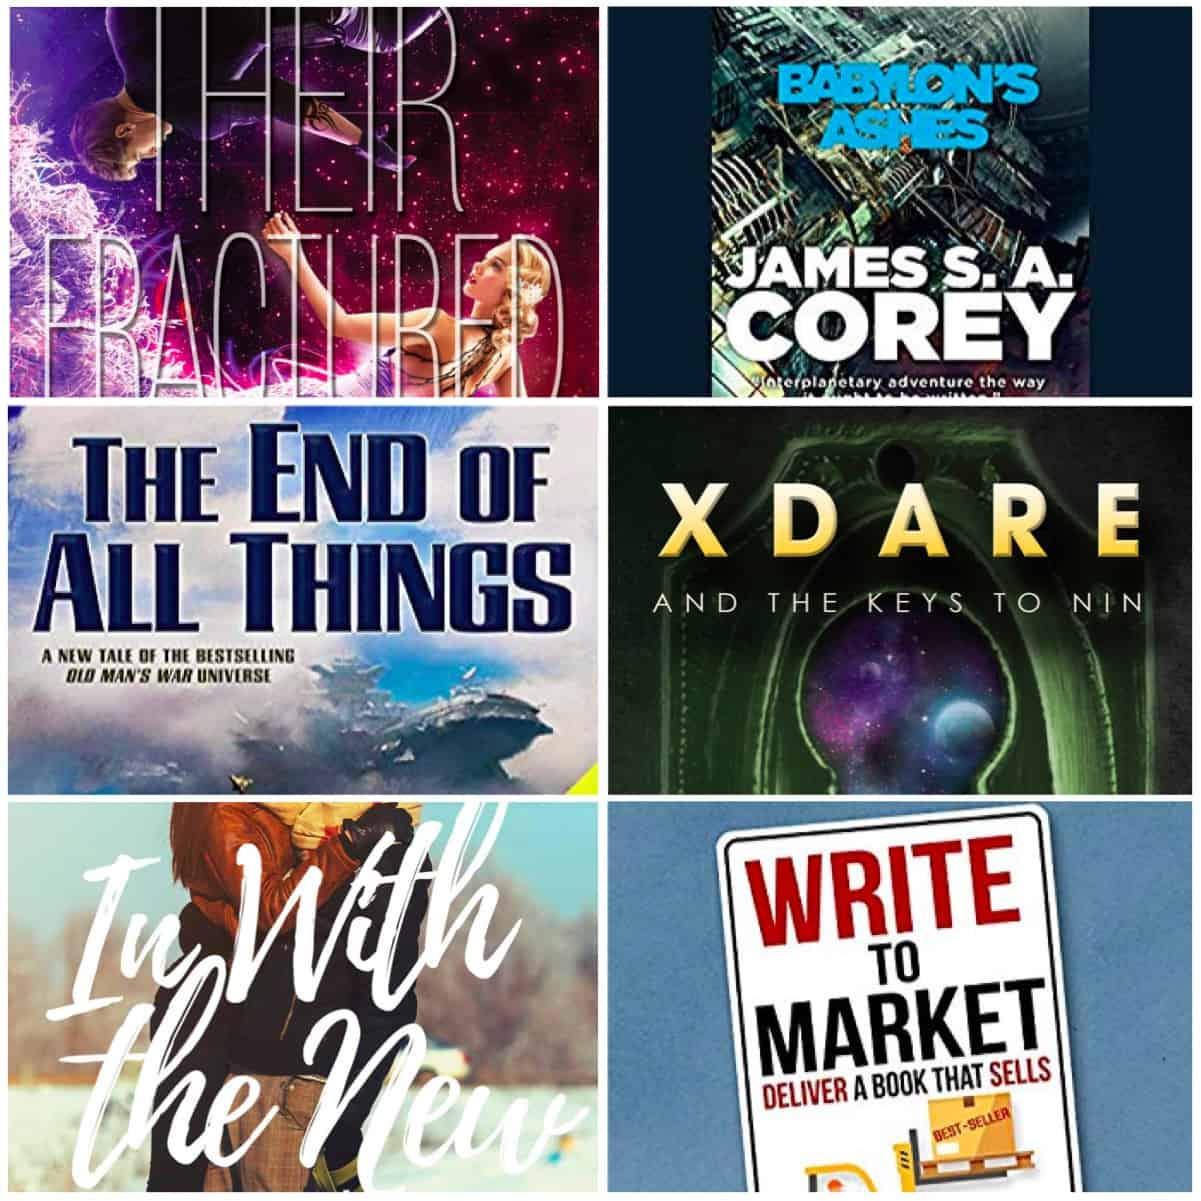 Lots of great books read this month! Including THEIR FRACTURED LIGHT, X DARE, plus audiobooks from The Expanse Series and John Scalzi.